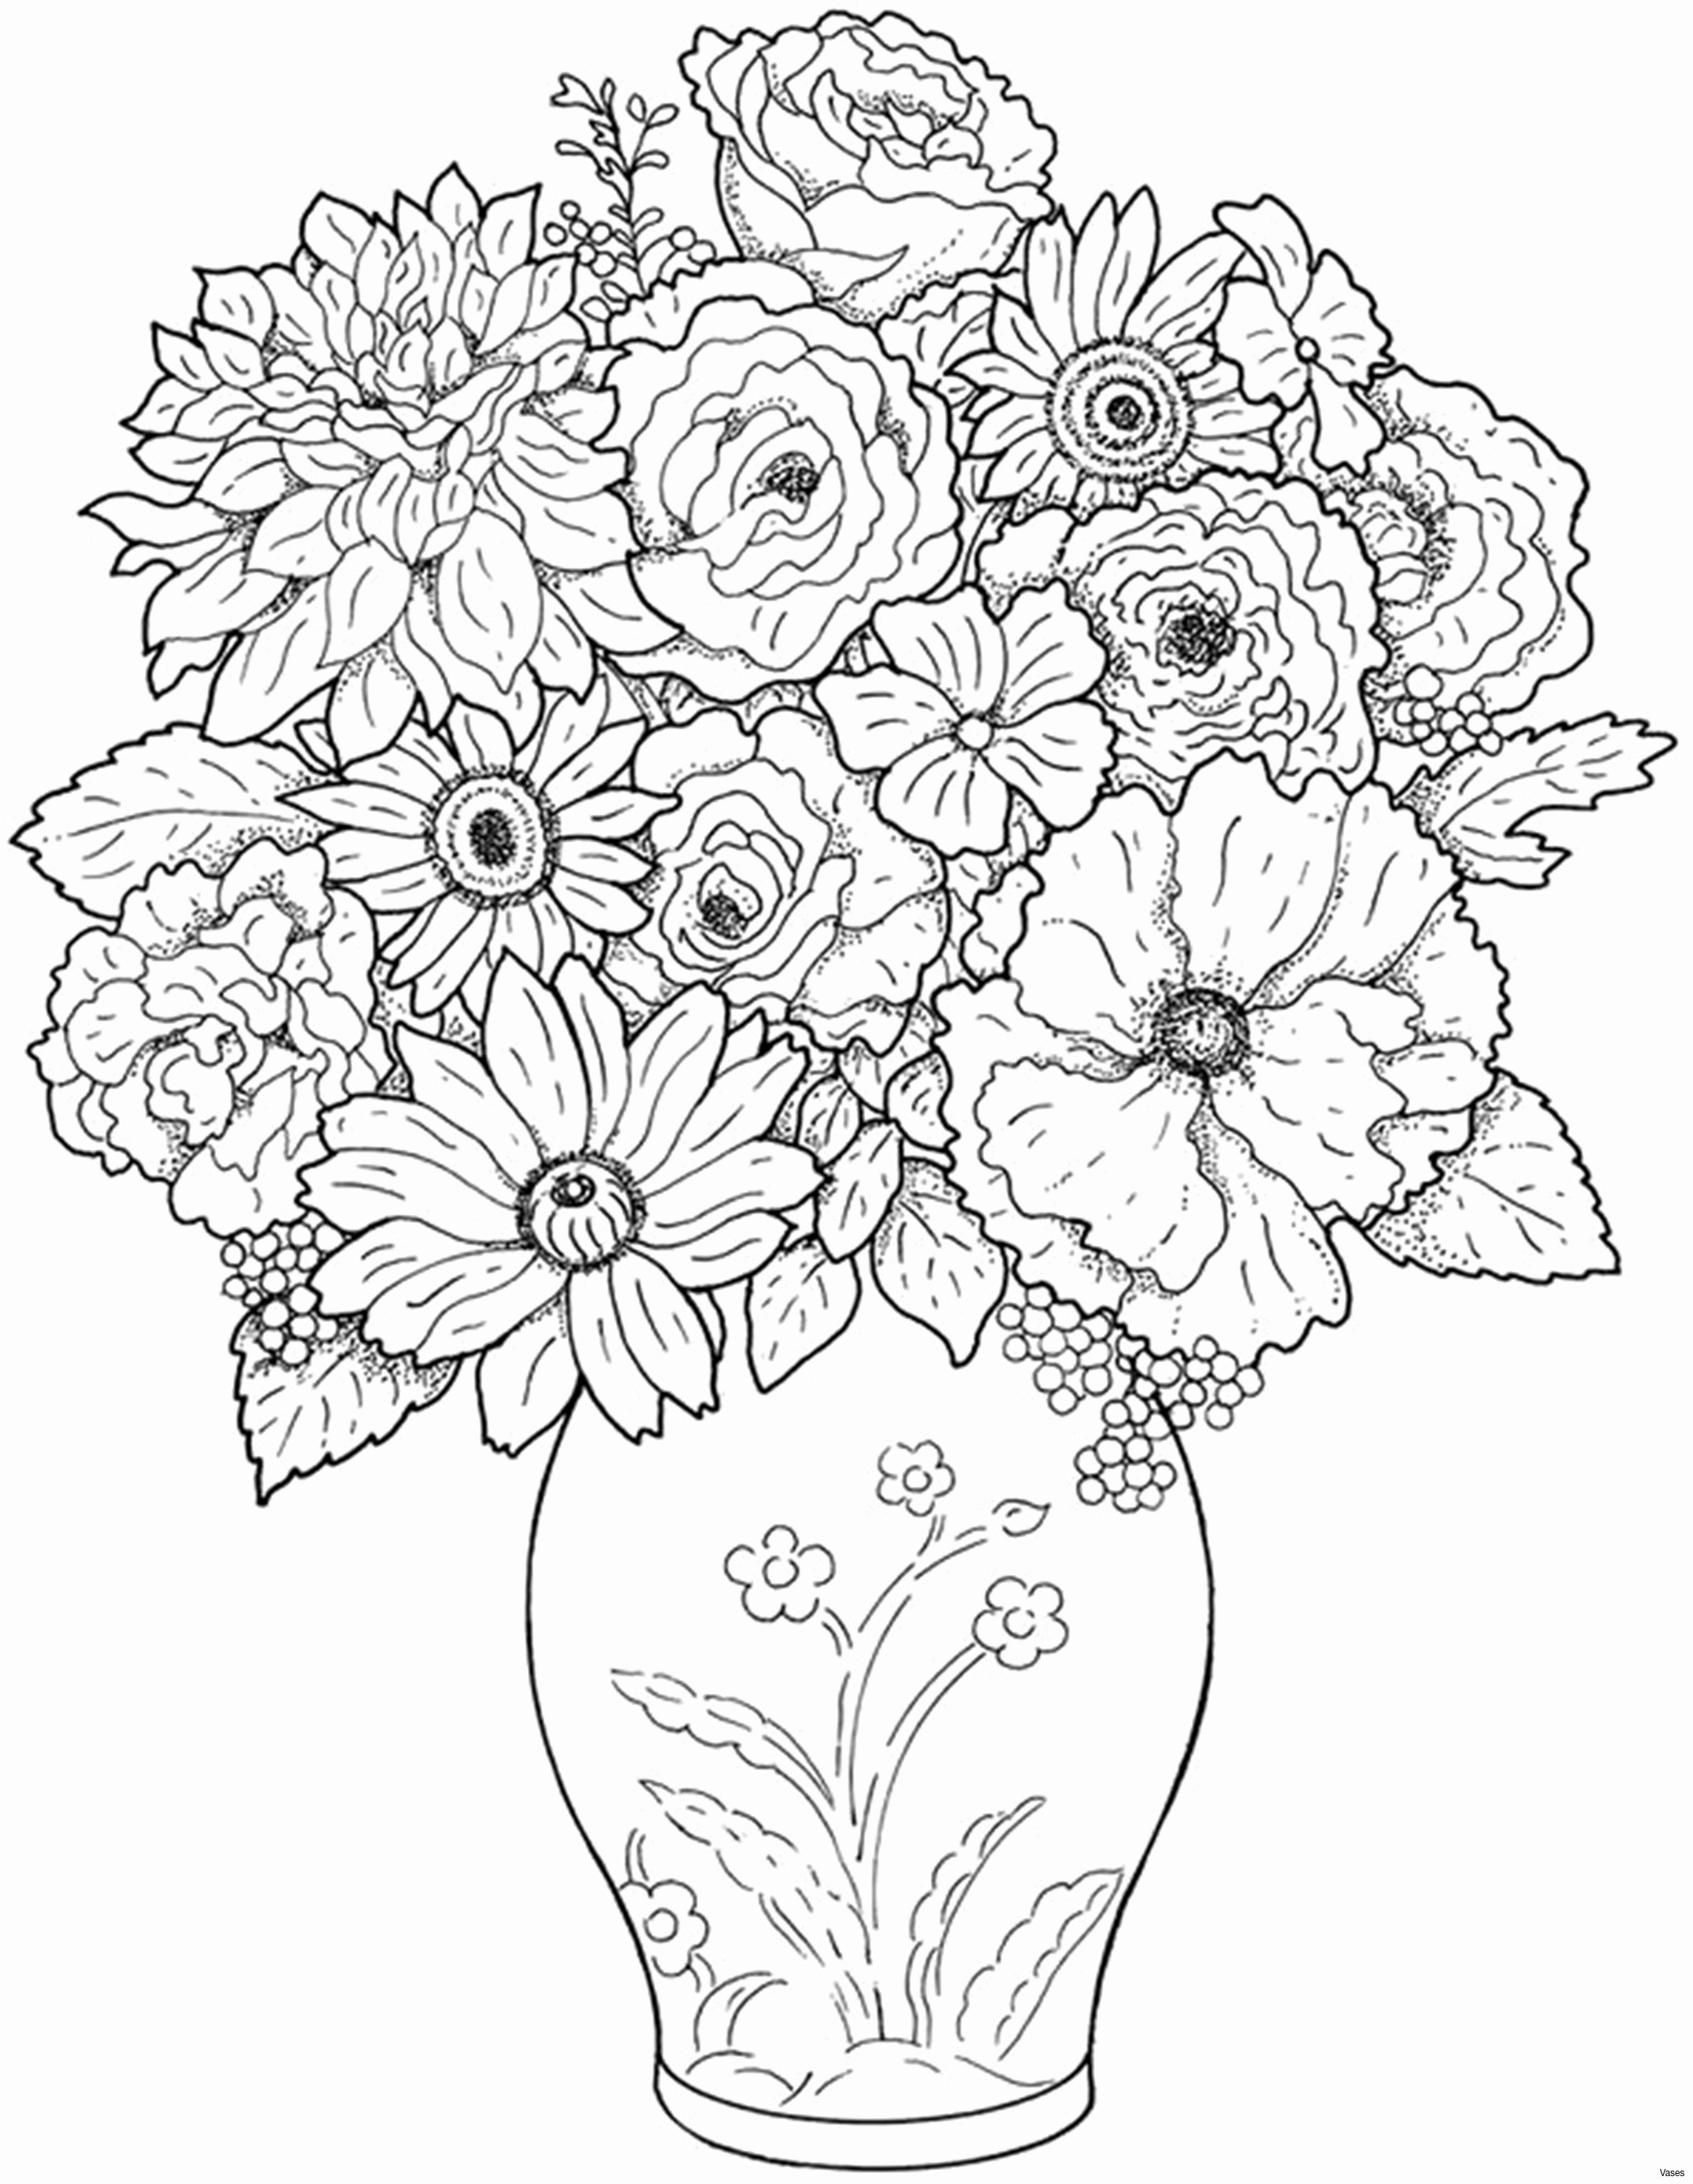 Flower Vase for Bedroom Of Printable Flower Vase Coloring Pages Almashriq Co Inside Printable Flower Vase Coloring Pages